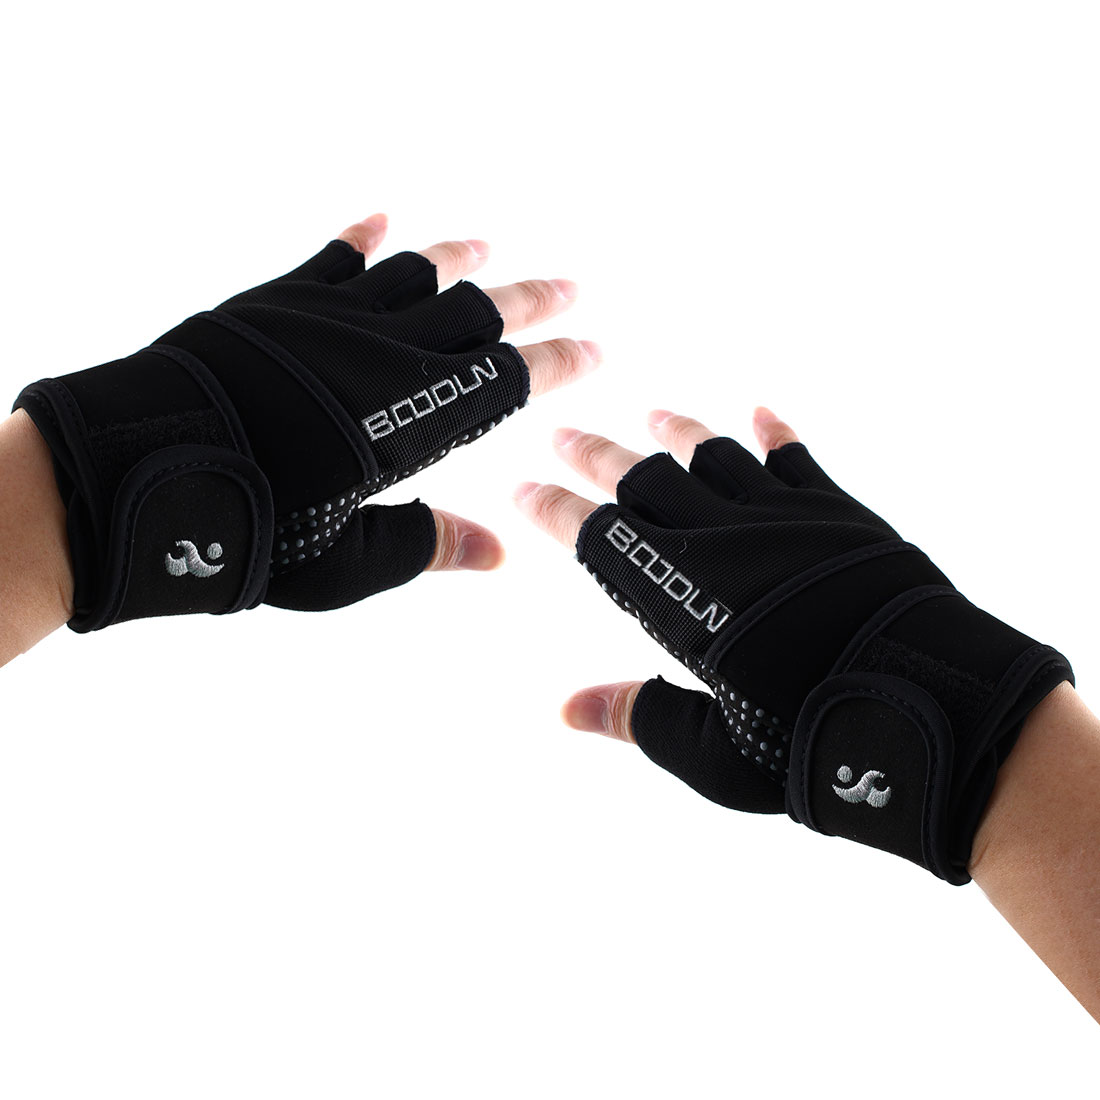 Boodun Authorized Sports Weight Lifting Training Gym Workout Fitness Embroidery Adjustable Anti Slip Half Finger Gloves Silver Tone Size M Pair